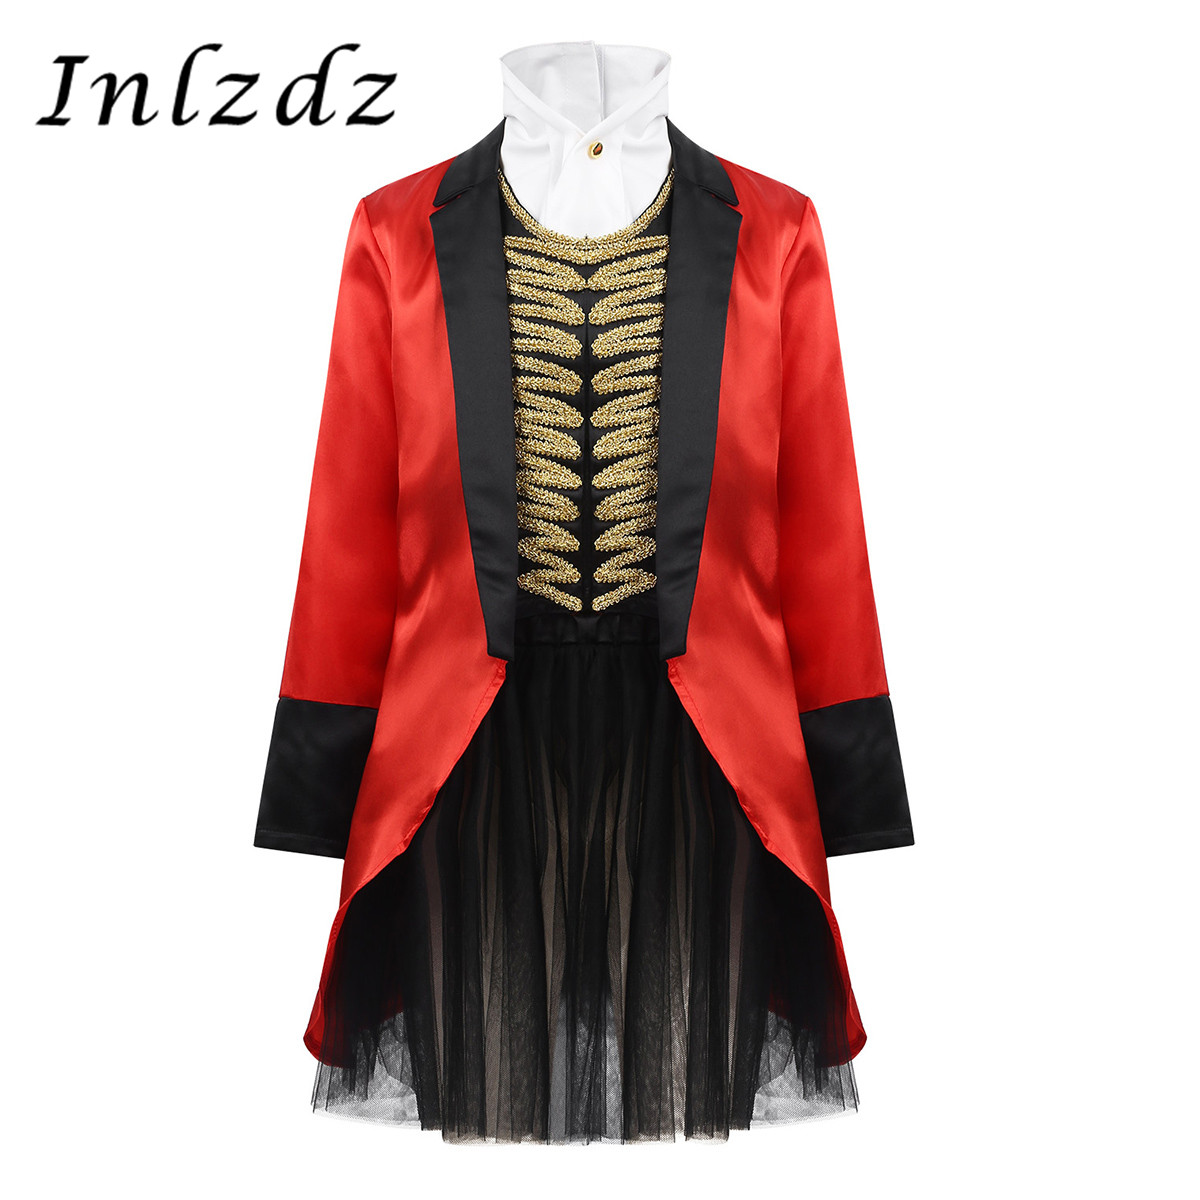 Kids Girls Circus Ringmaster Costume Outfit Jacket With Decorative Neckpiece Tutu Skirt Set For Halloween Cosplay Party Dress Up